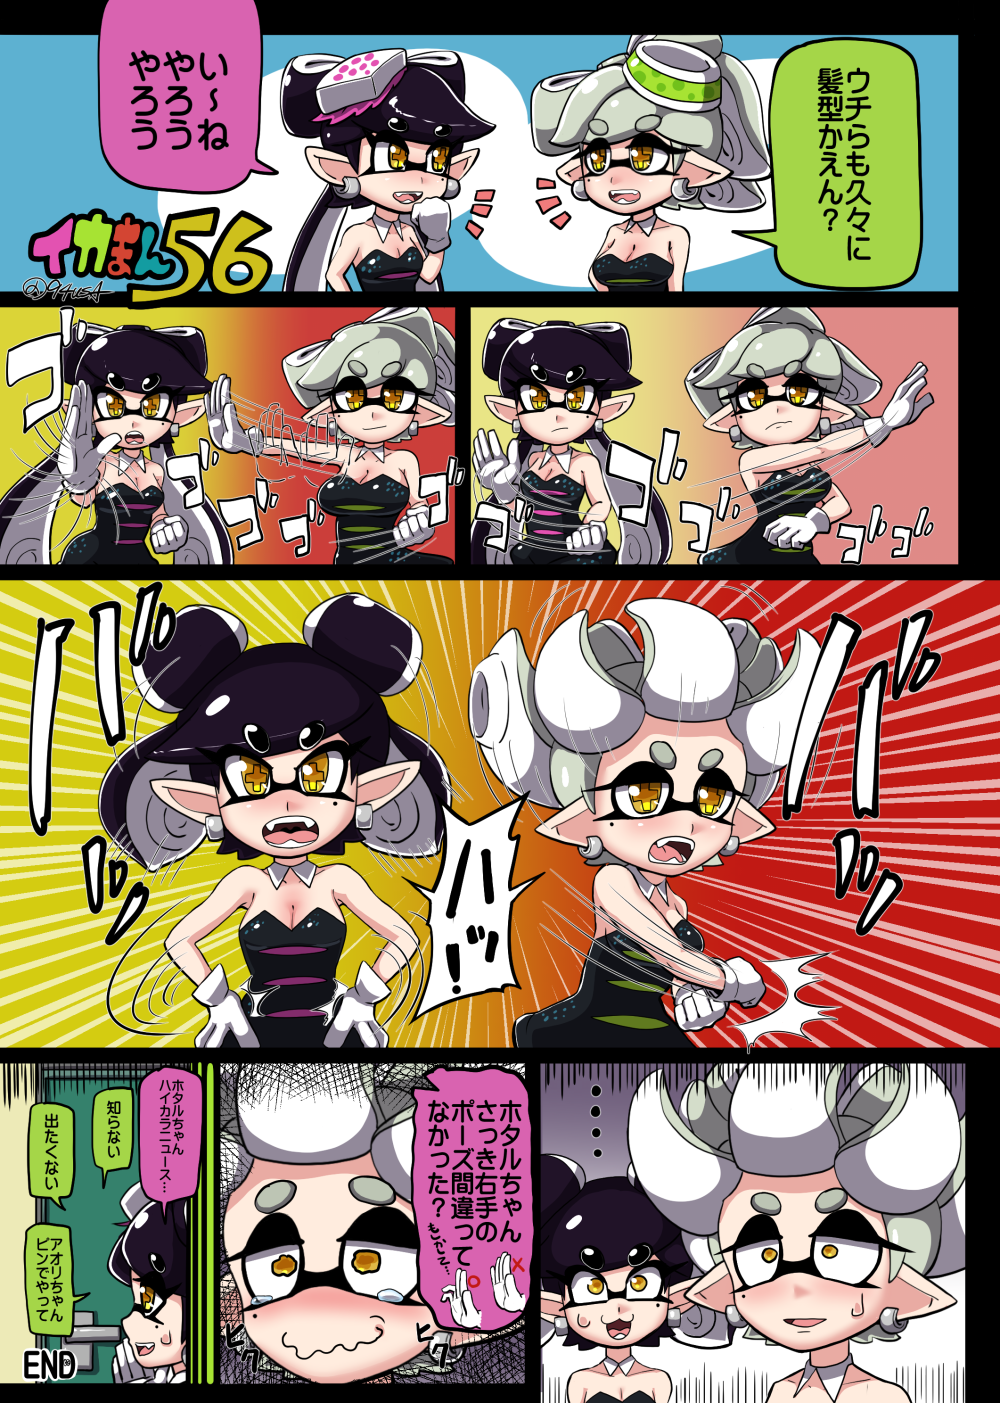 Hairstyle Change Not As Planned Splatoon Know Your Meme